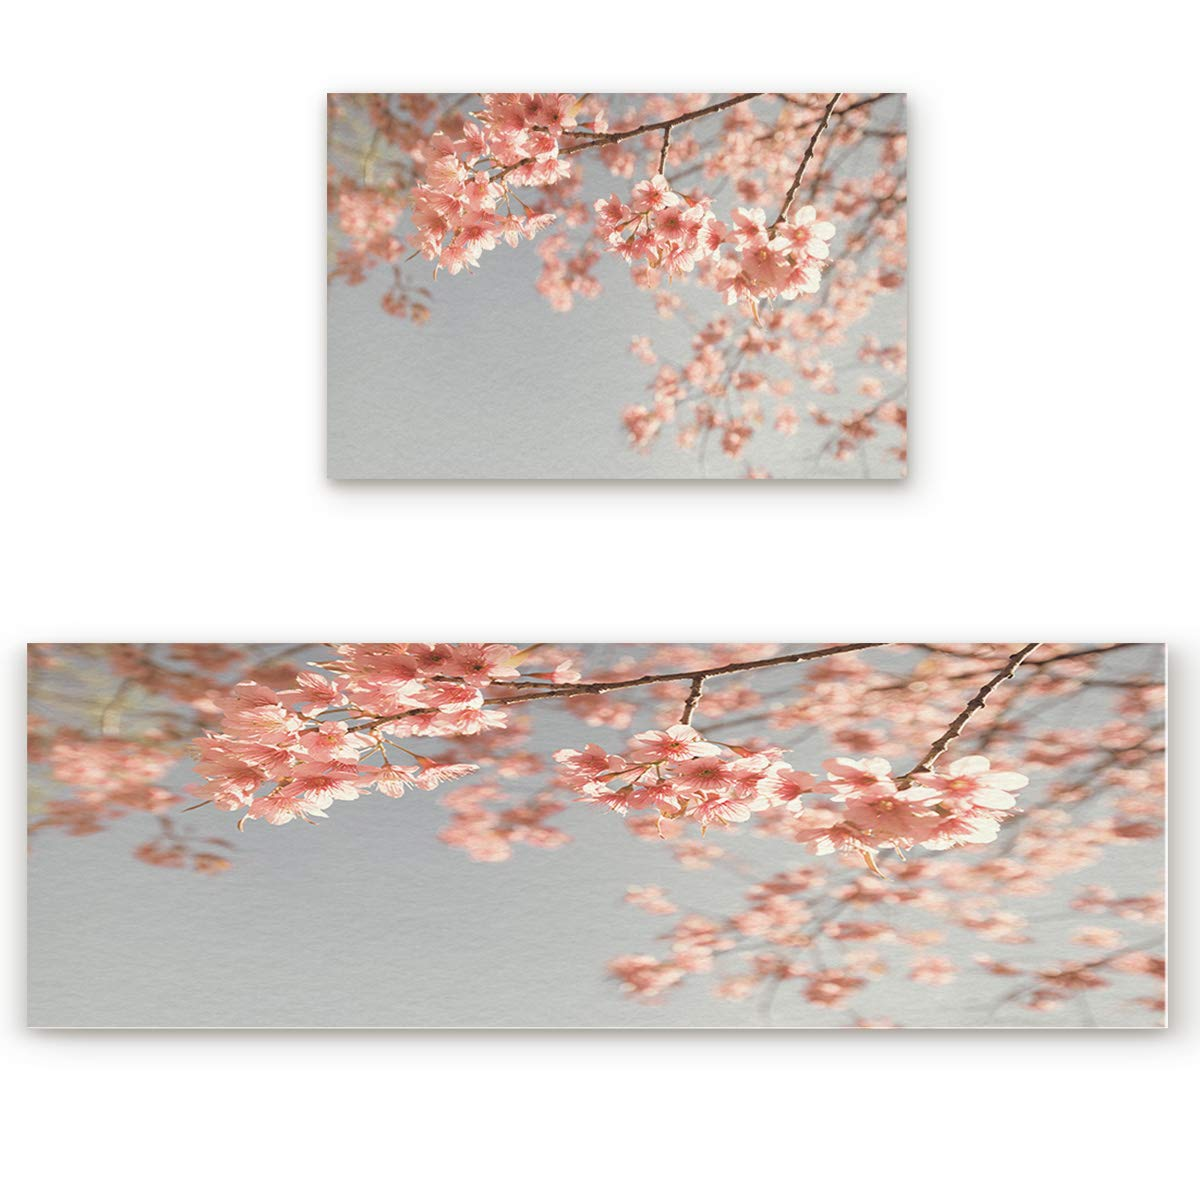 23.6\ SODIKA 2 Pieces Kitchen Rug Set,Non-Skid Slip Washable Doormat Floor Runner Bathroom Area Rug Carpet,Pink Blooming Cherry Blossoms (23.6x35.4in+23.6x70.9 inches)